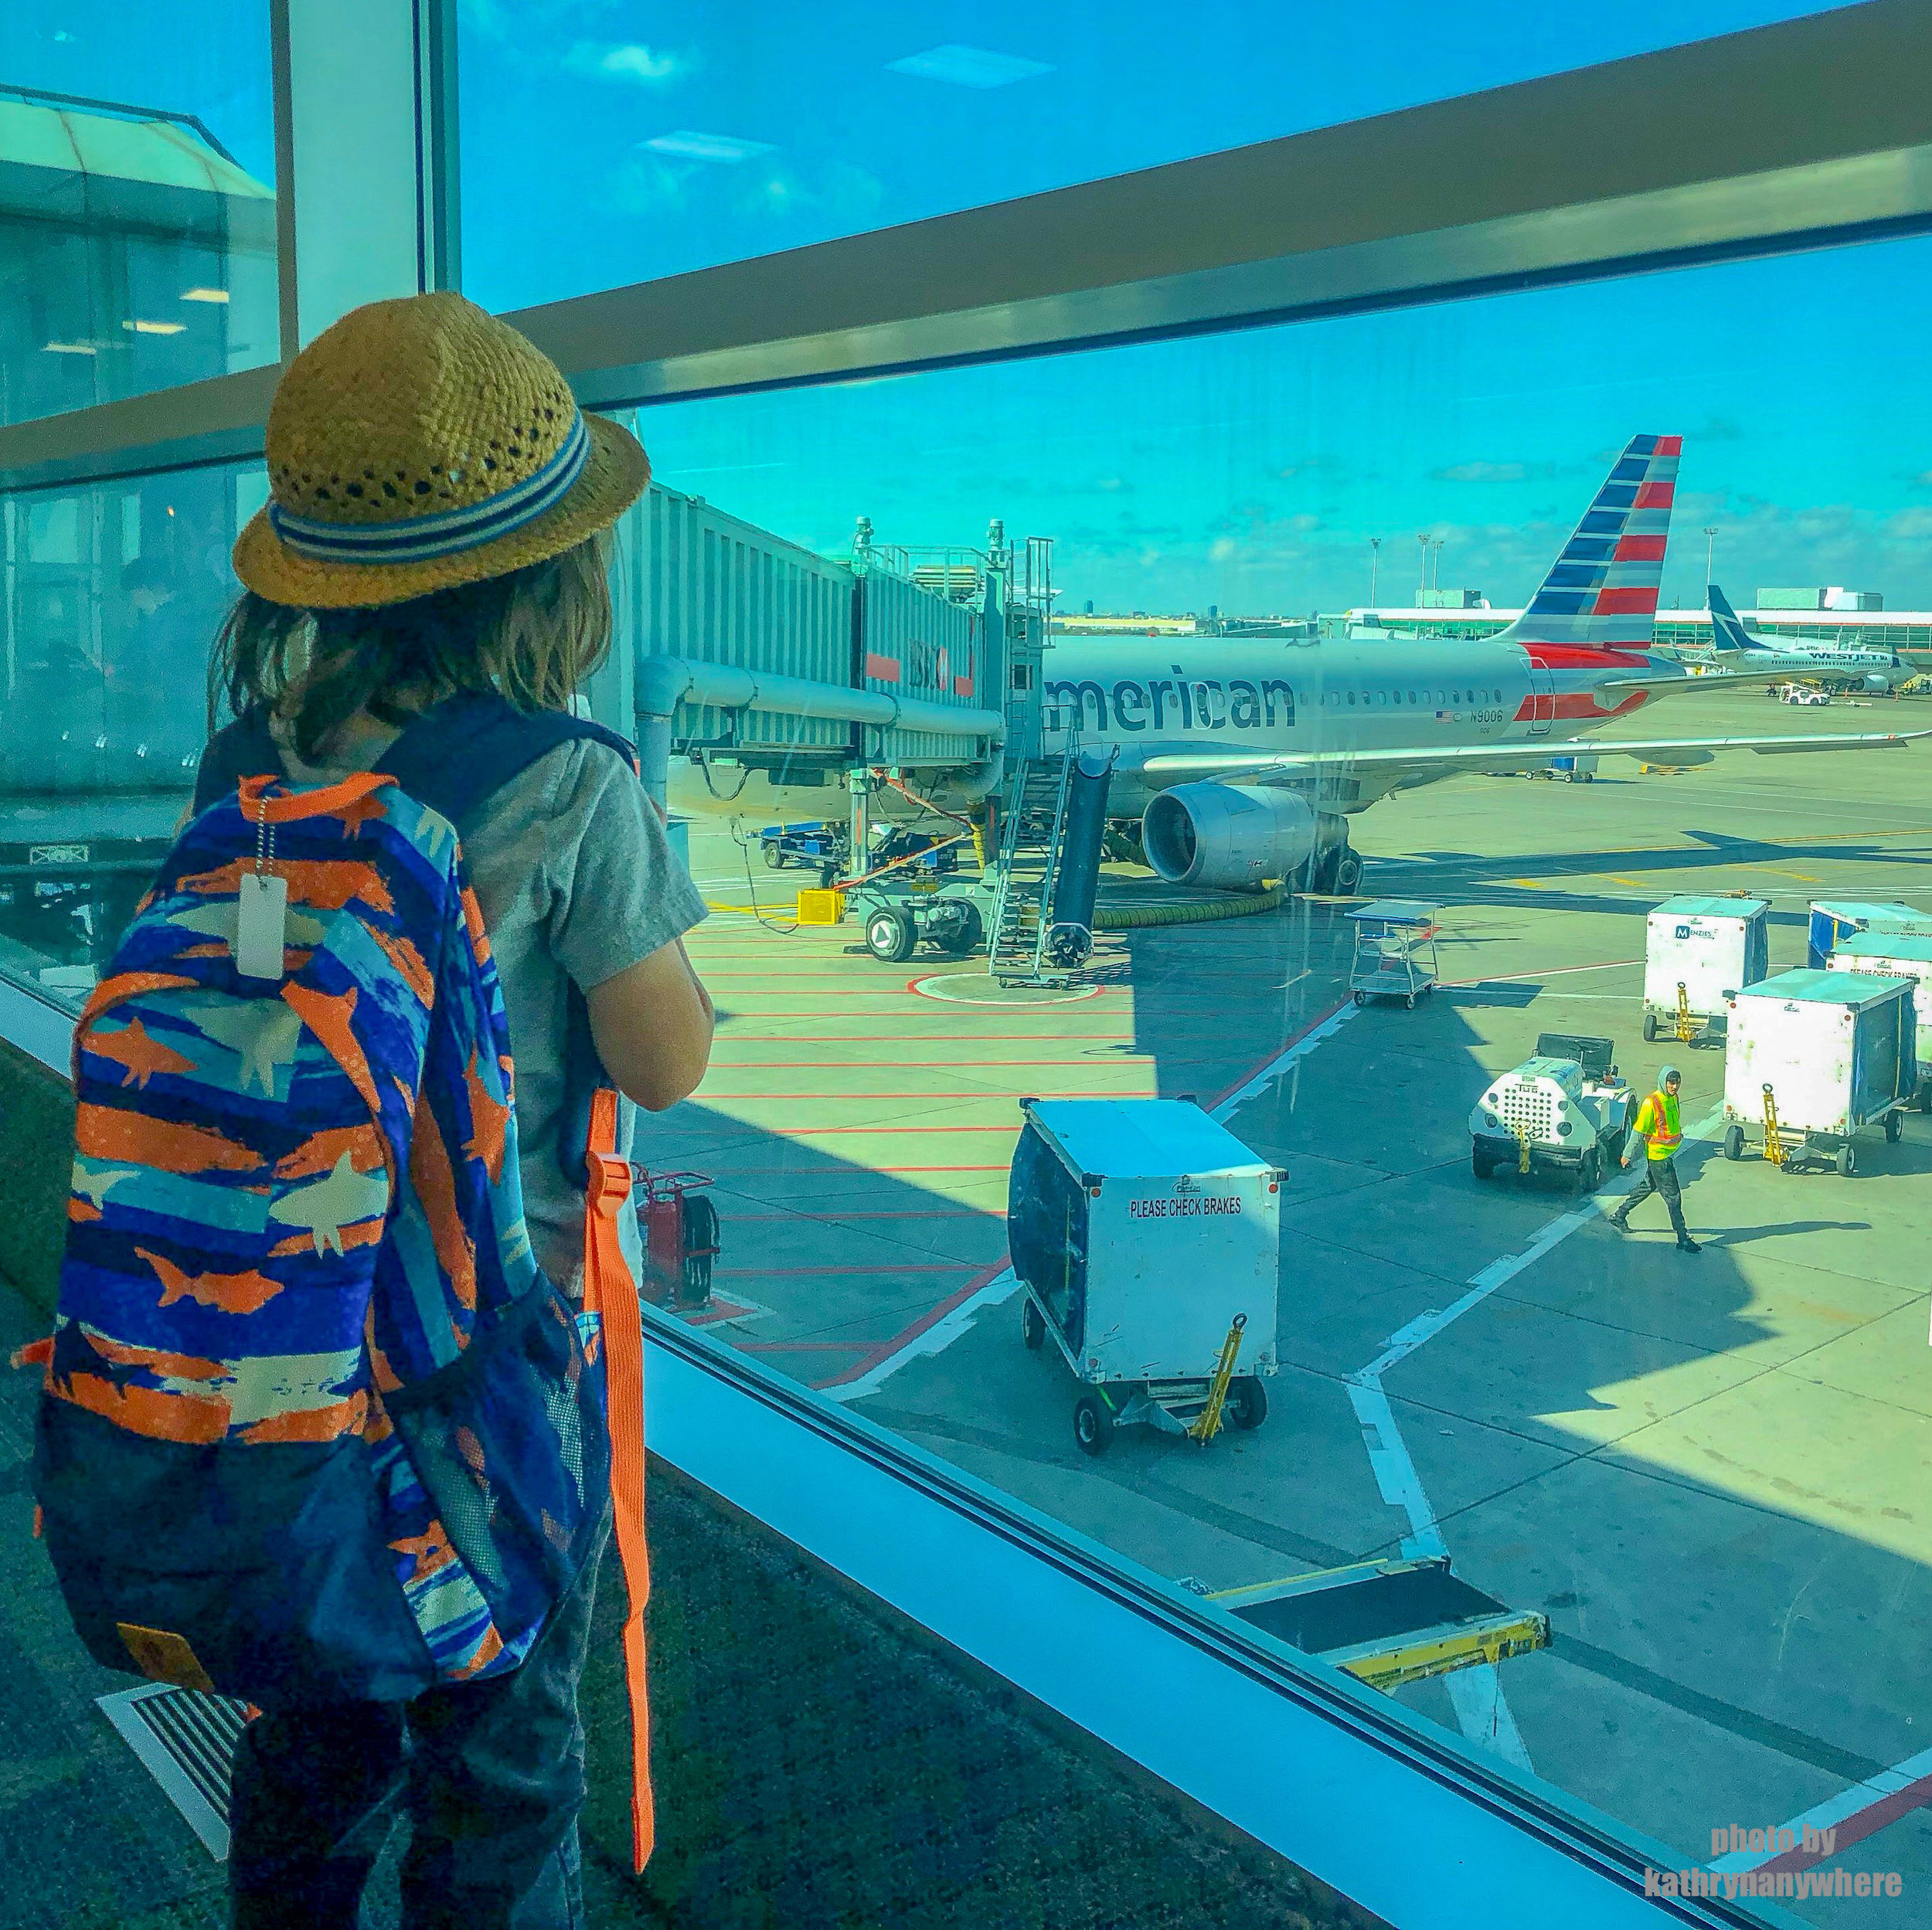 Flying With Kids? What you need to know! #flyingwithkids #airplanerides #travelwithkids #kidstravel #willisitwithmykids